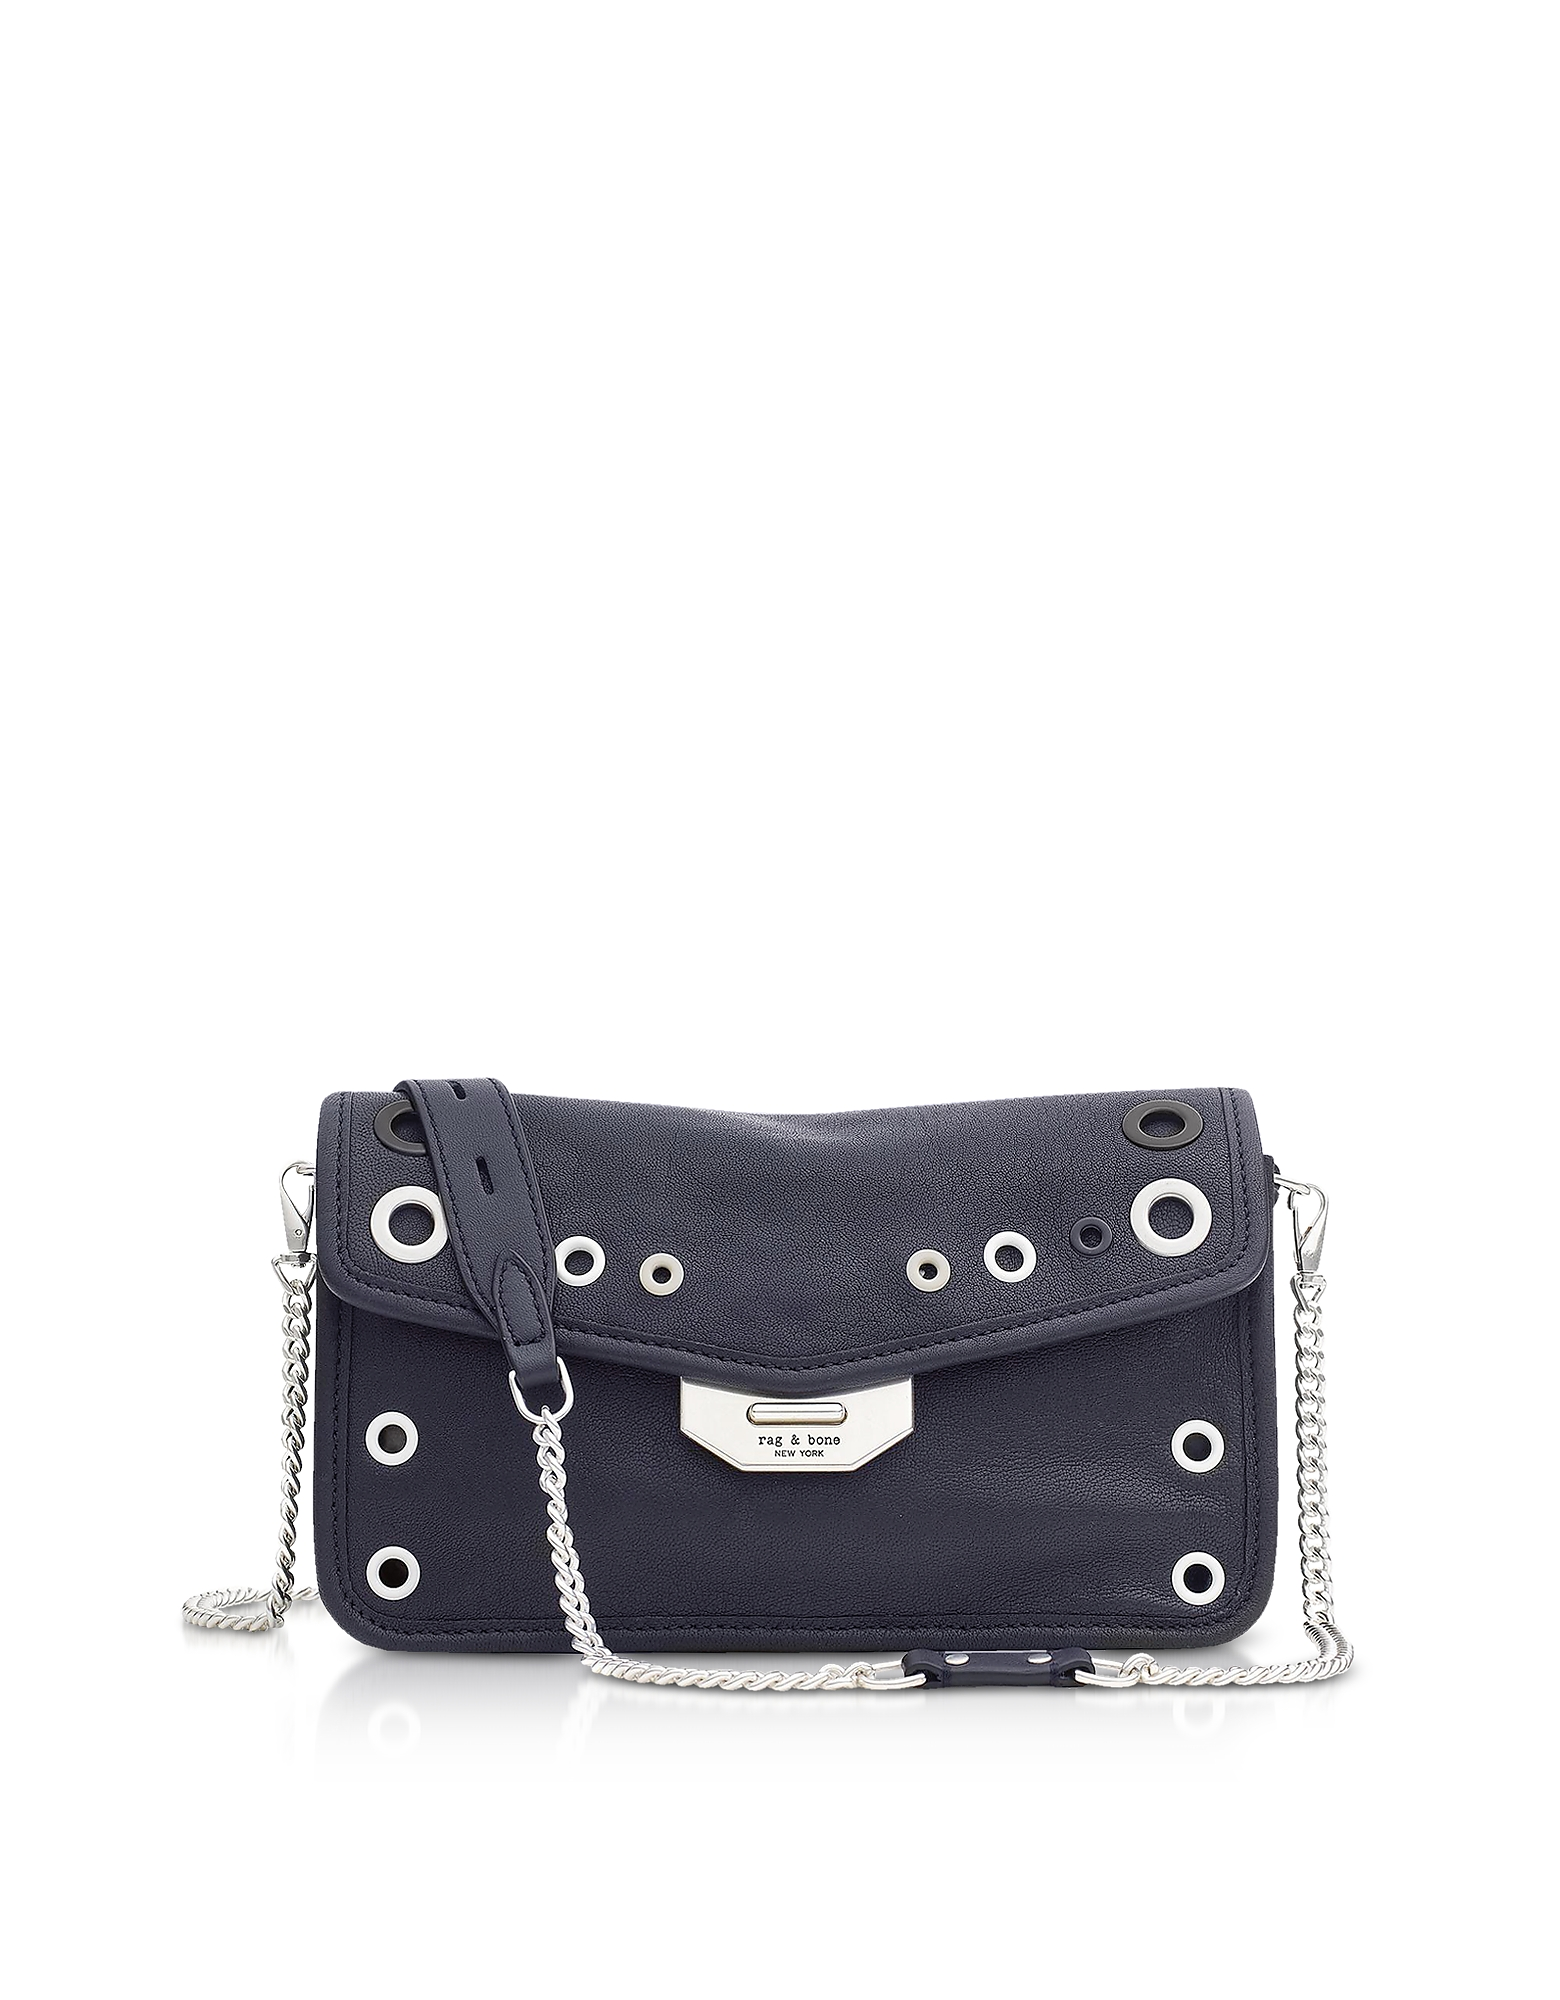 Grommet Field Clutch in Pelle Blu Navy